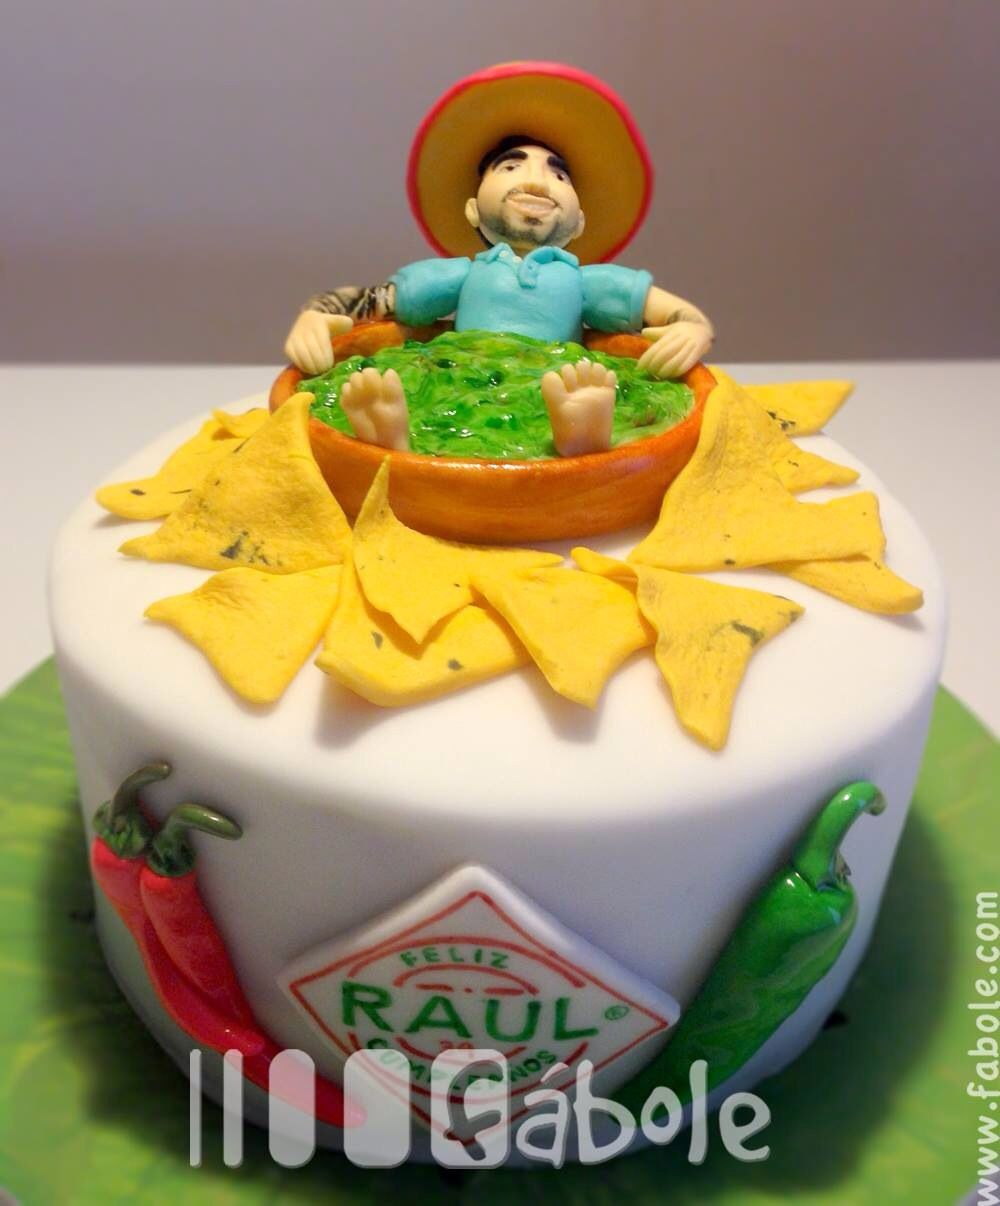 Mexican food lover cake topper made in fondant fabole cake mexican food lover cake topper made in fondant biocorpaavc Images